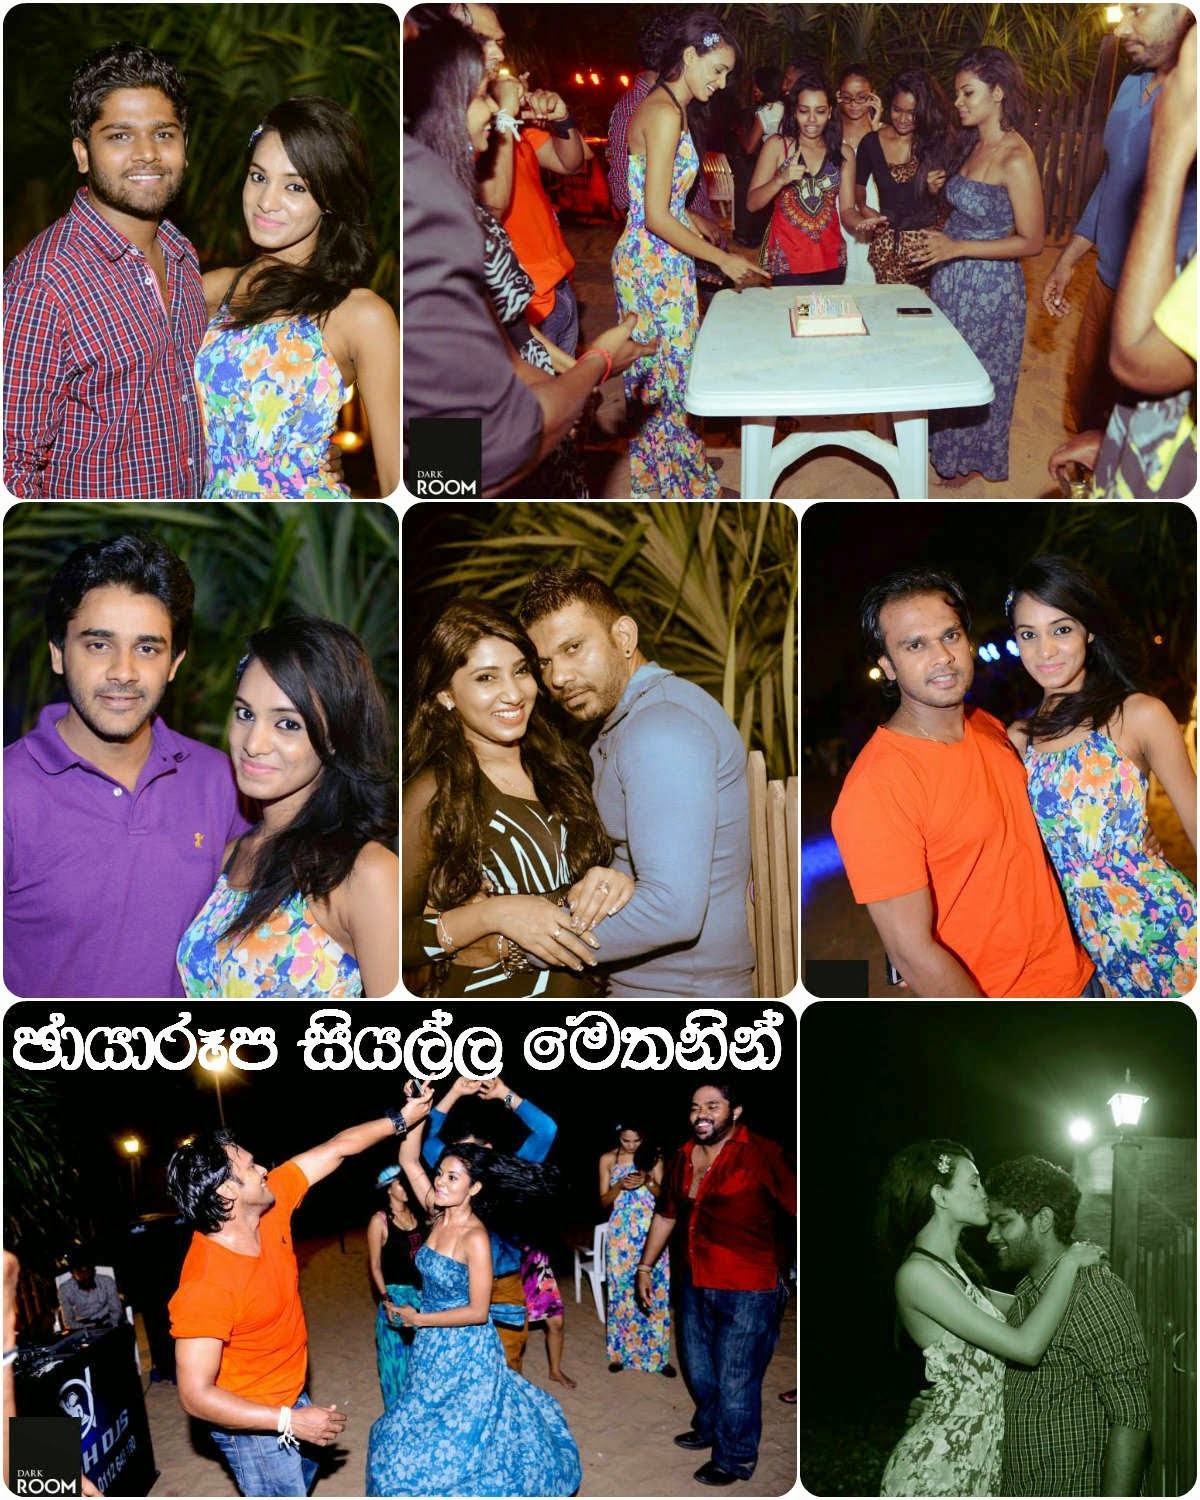 http://gossiplankalive.blogspot.kr/2014/03/kaushis-bday-party-at-beach.html